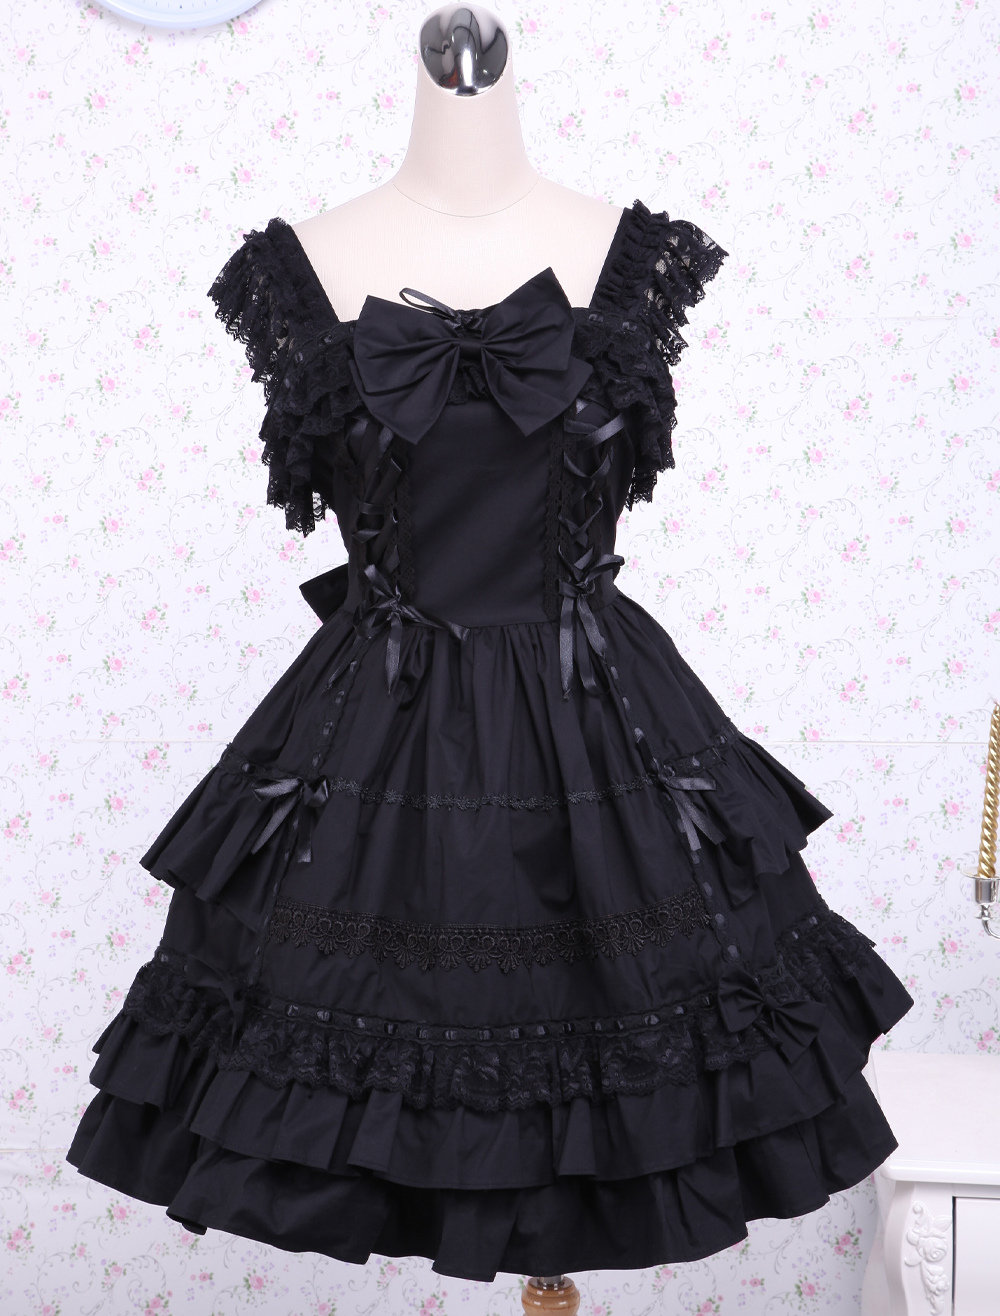 Buy Gothic Lolita Dress JSK Black Ruffles Bow Lace Trim Lolita Jumper Skirt for $79.99 in Milanoo store